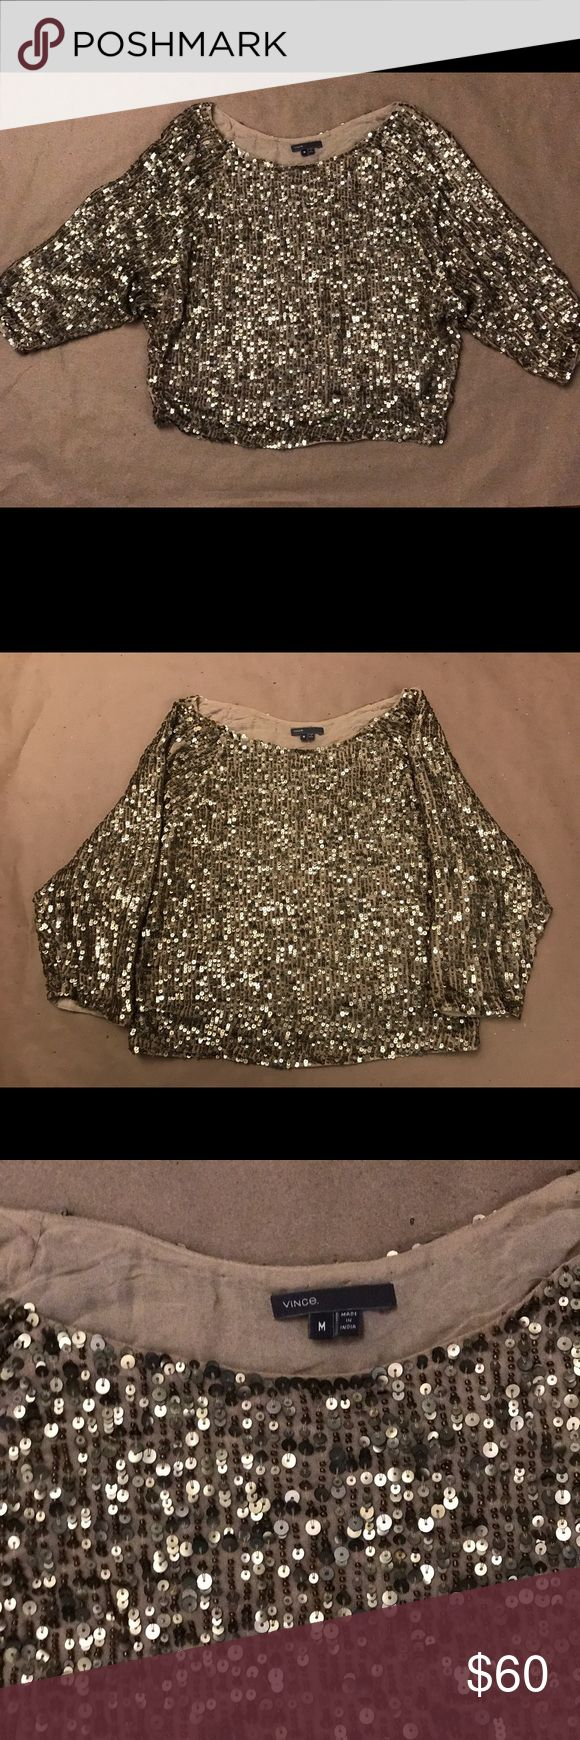 Vince Metallic Gold Sequin Cluster Slouchy Top Vince Metallic Gold Sequin Beaded Shirt Top Blouse Size Medium Vince Tops Blouses